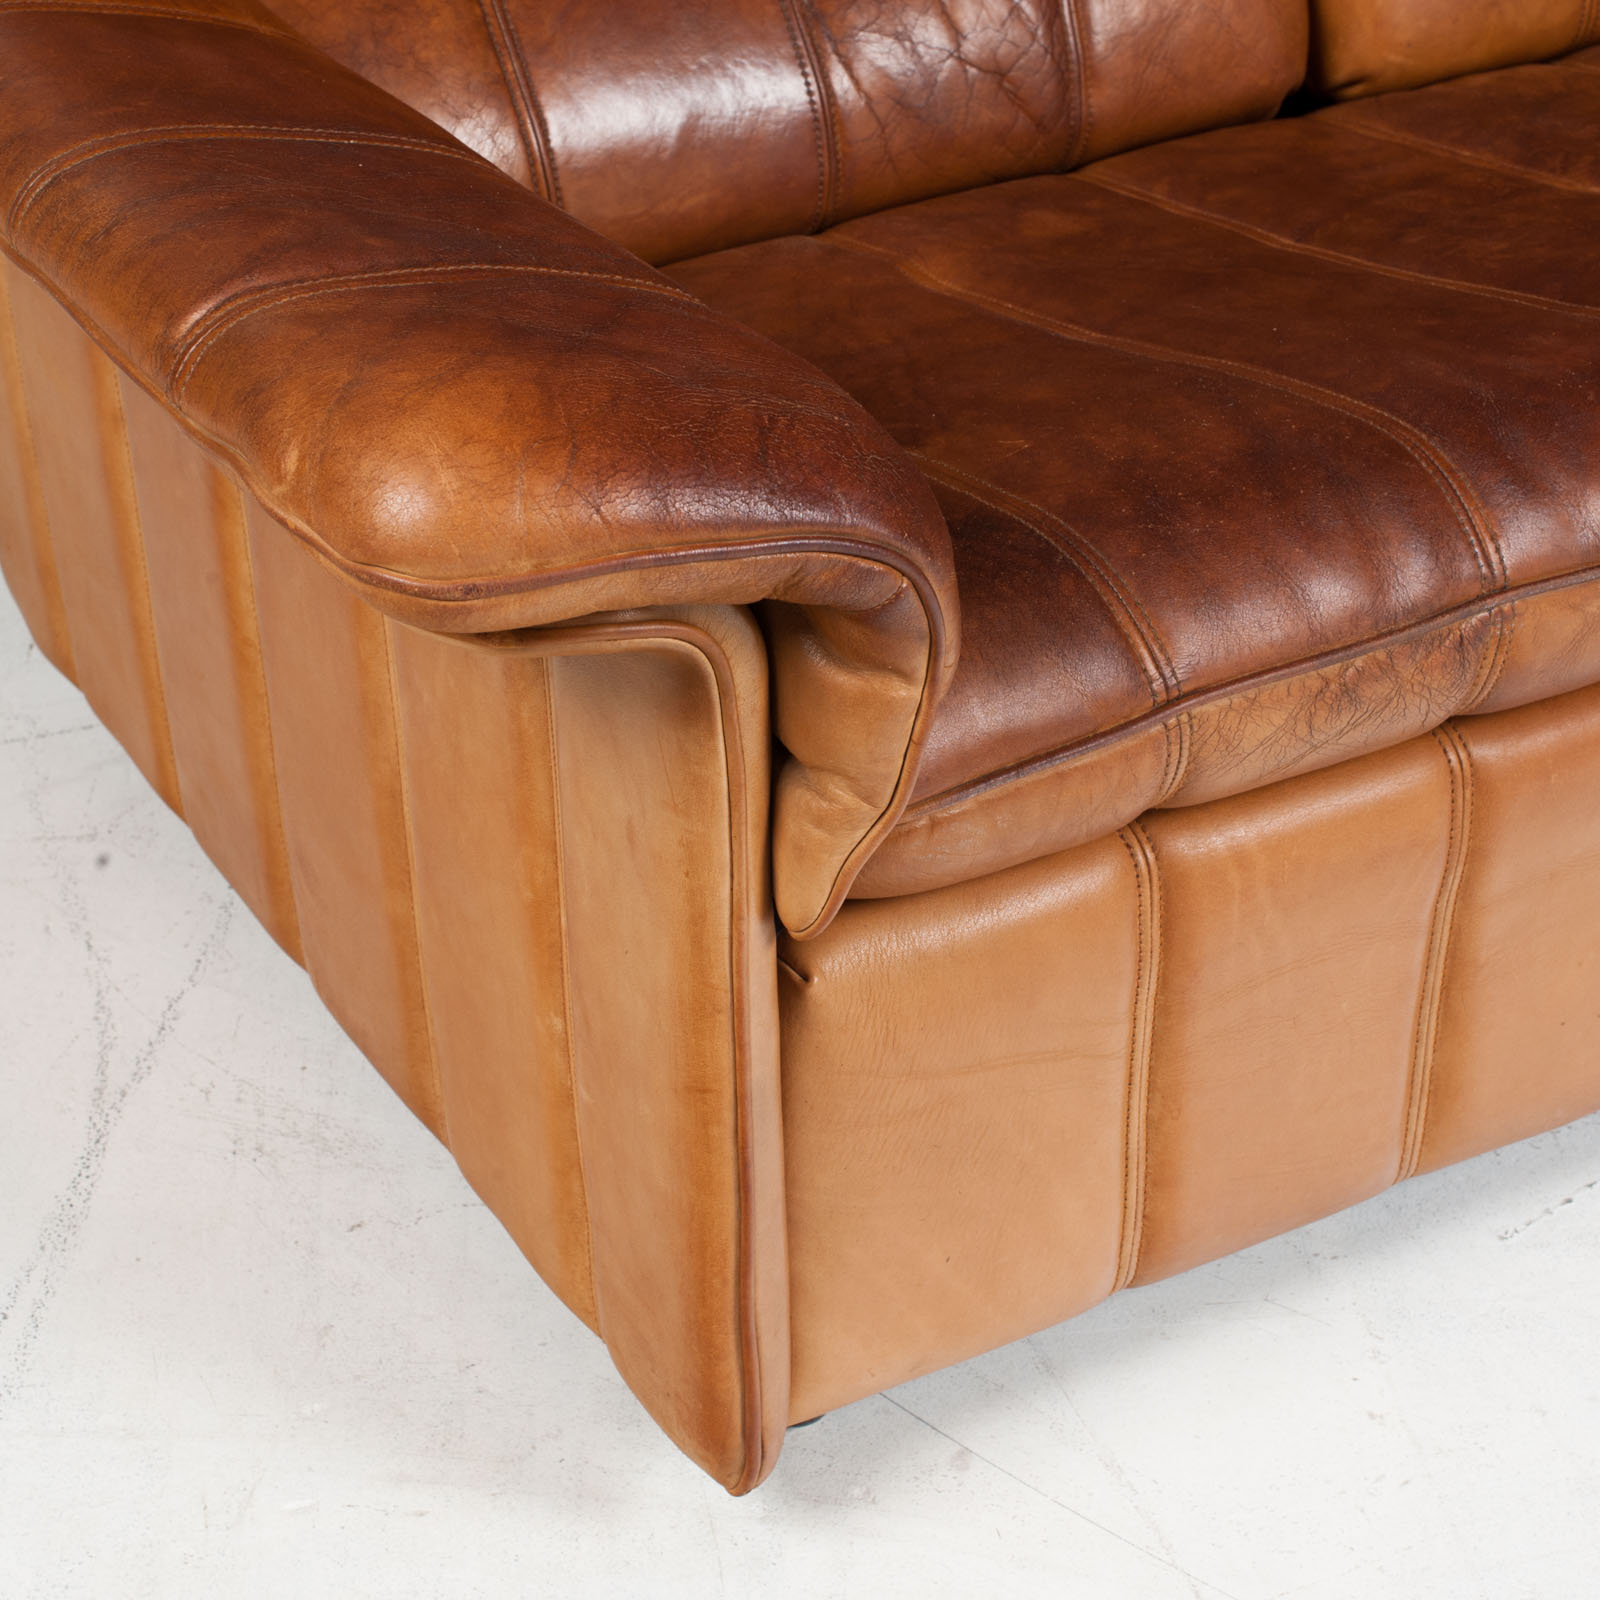 3 Seat Sofa By De Sede In Tan Leather 1970s Switzerland 05